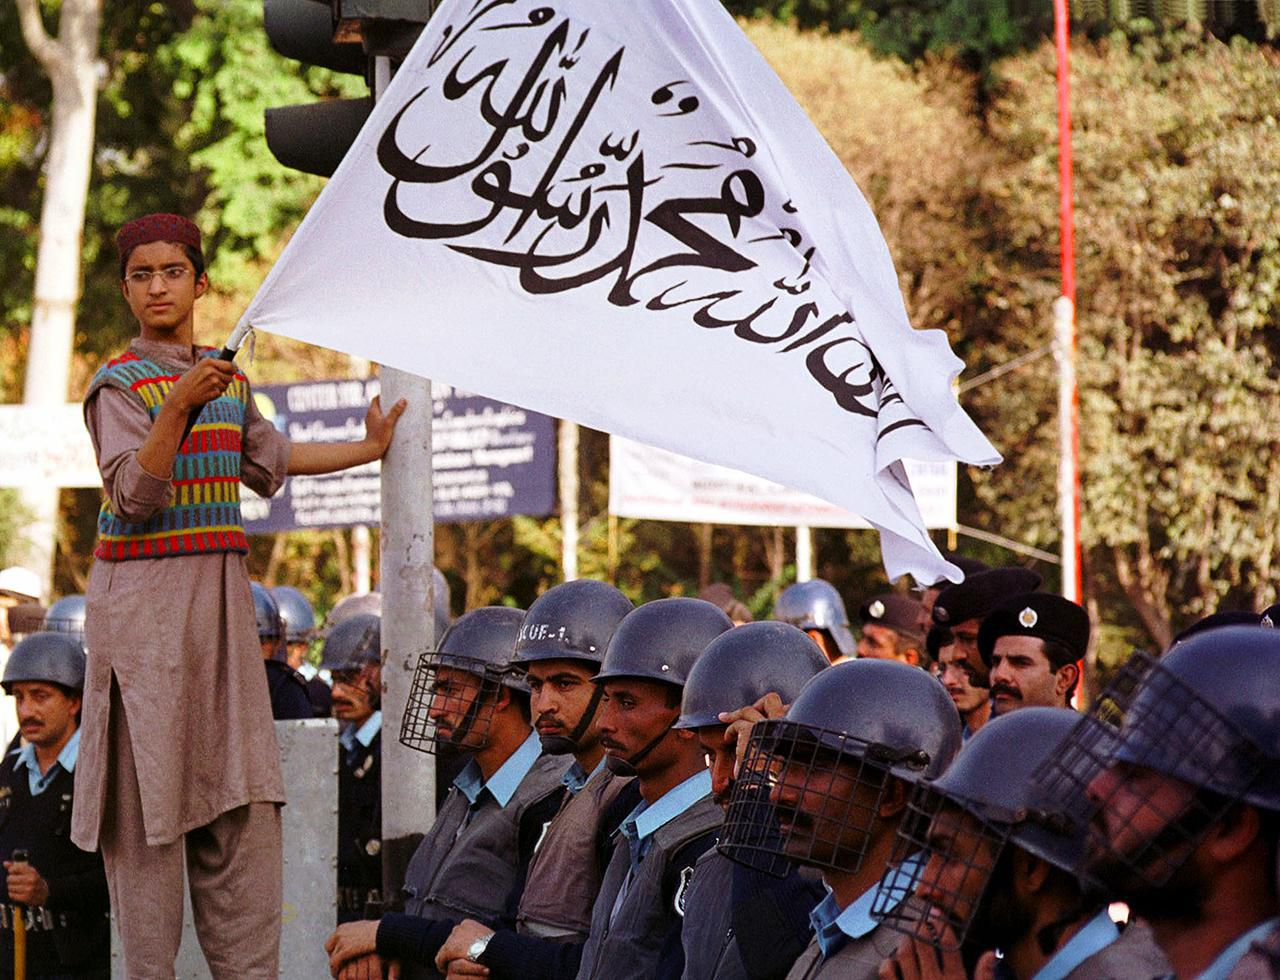 taliban decrees and prohibitions against women